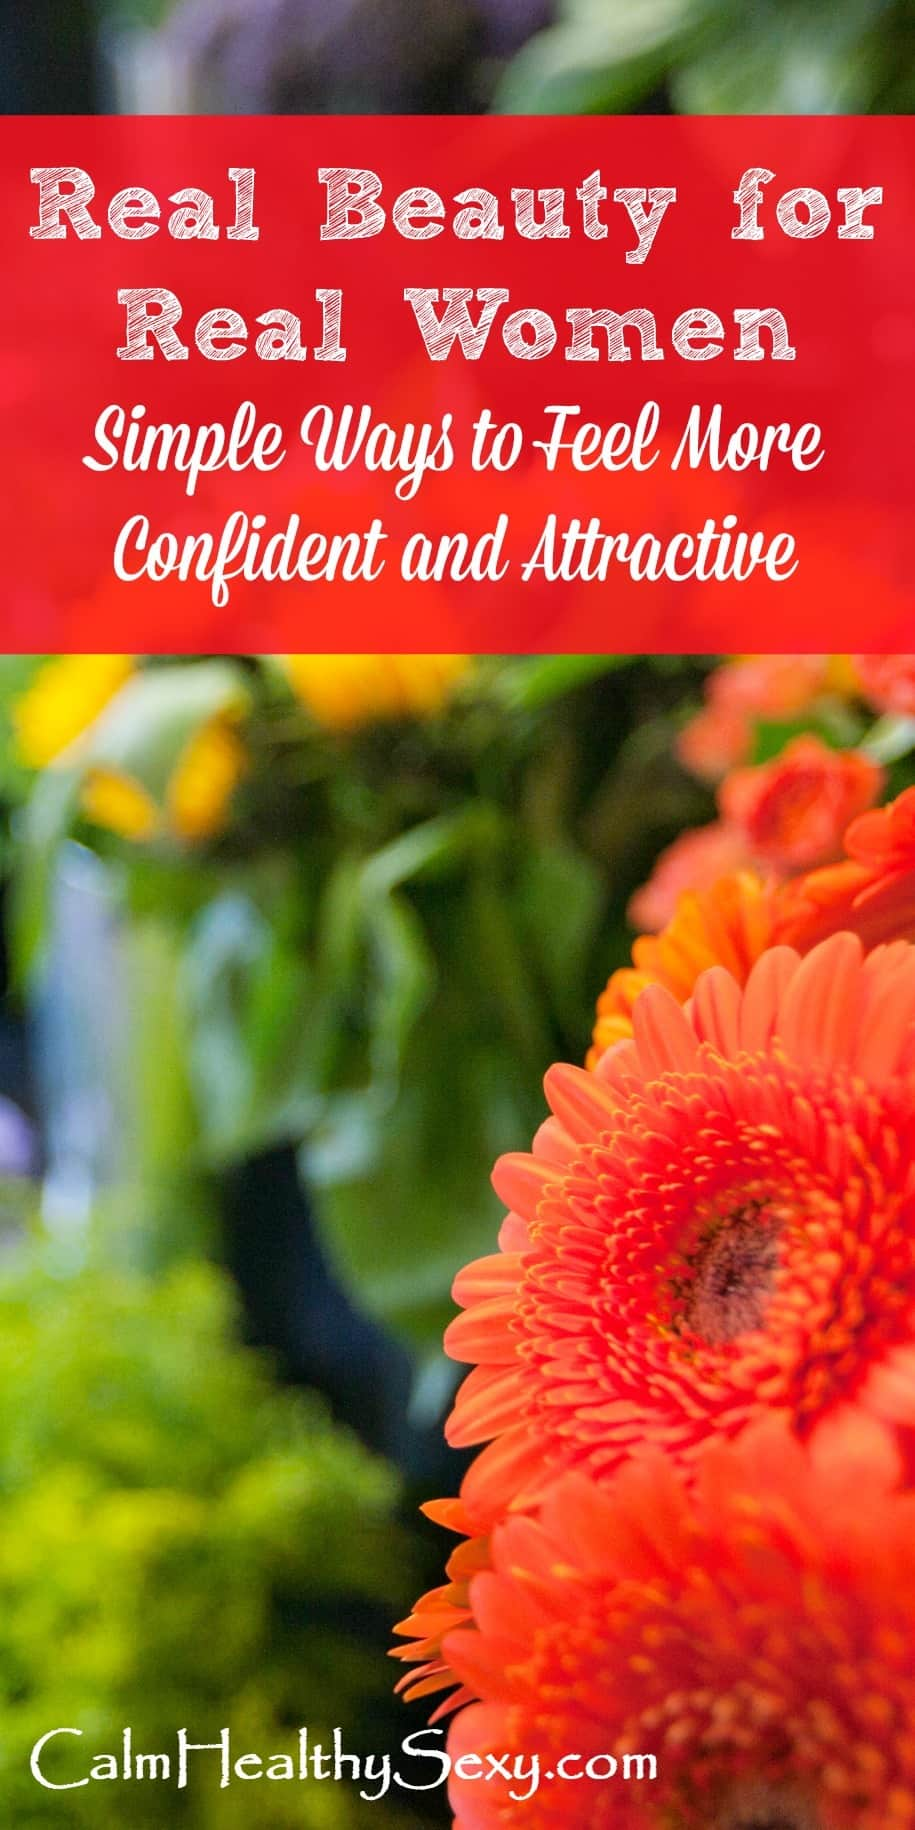 Real Beauty for Real Women - Let go of our culture's lies about women's value, worth and beauty. Here are simple ways to feel more attractive, improve your body image, and feel more confident. True beauty in a woman comes from within. Inspiration and encouragement